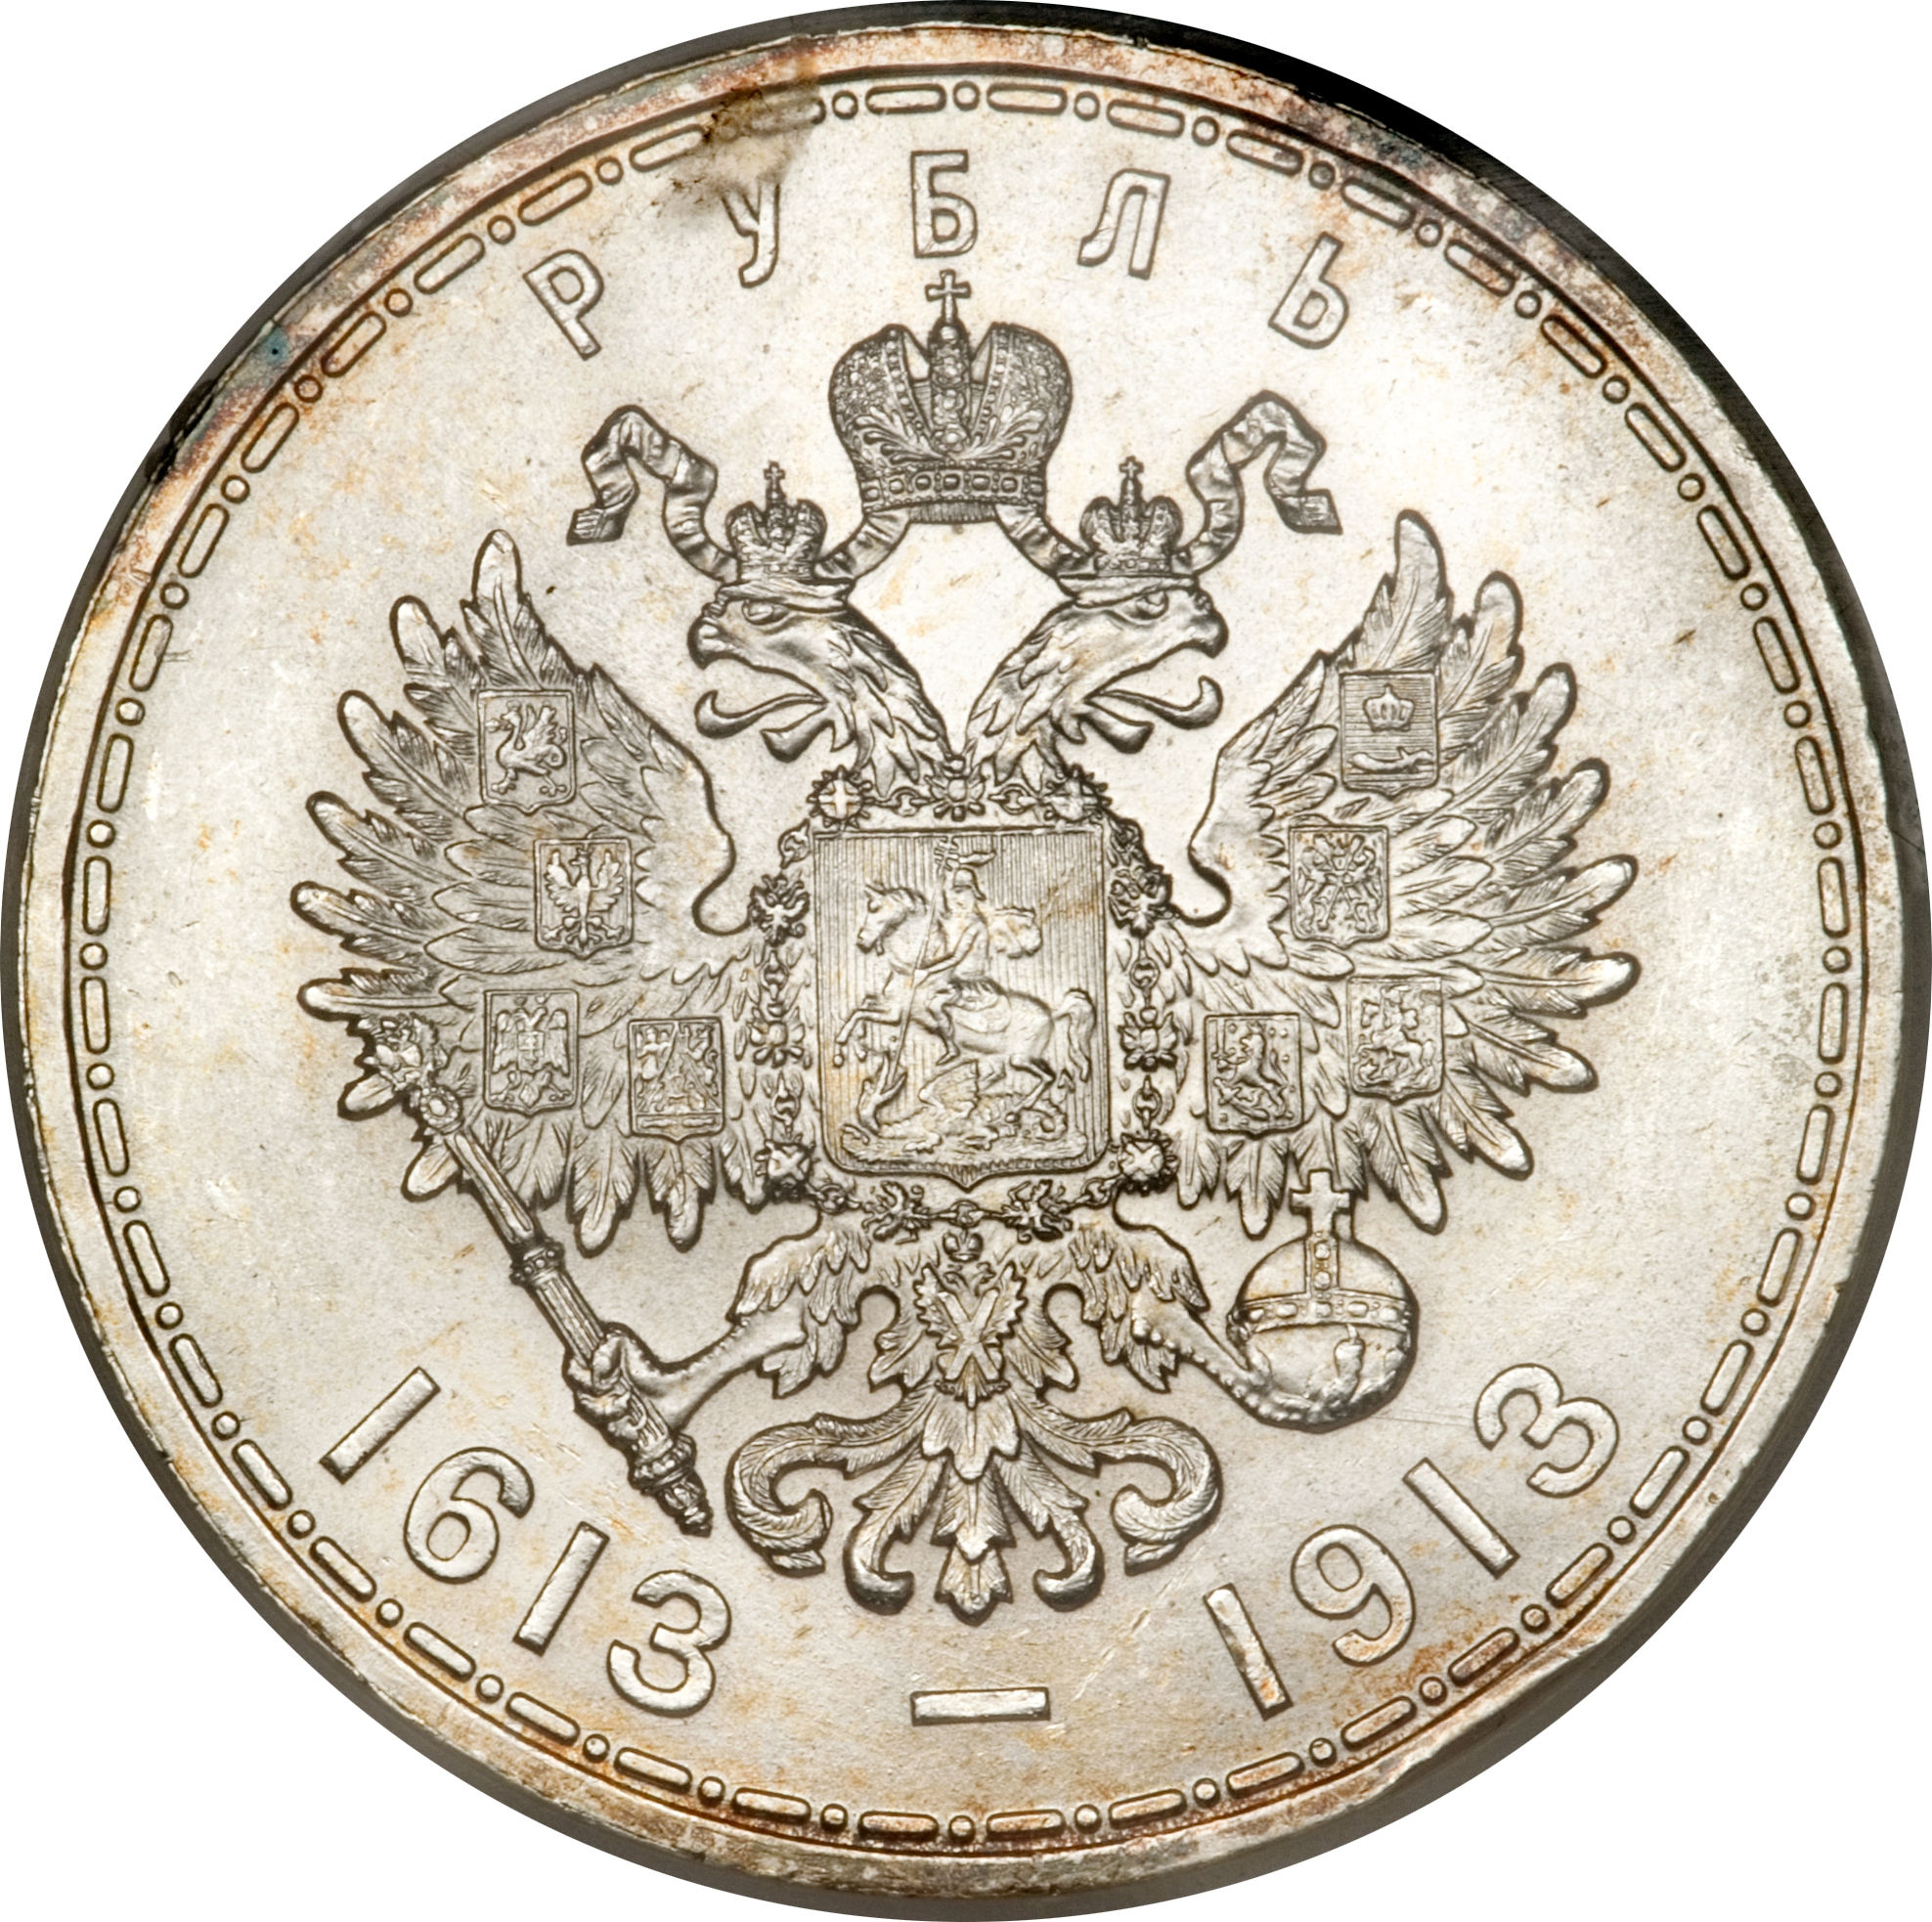 romanov dynasty overview 2 Empire of the tsars - the evolution of russia's romanov dynasty empire of the tsars - the evolution of russia's romanov dynasty history 2,915 published 2.